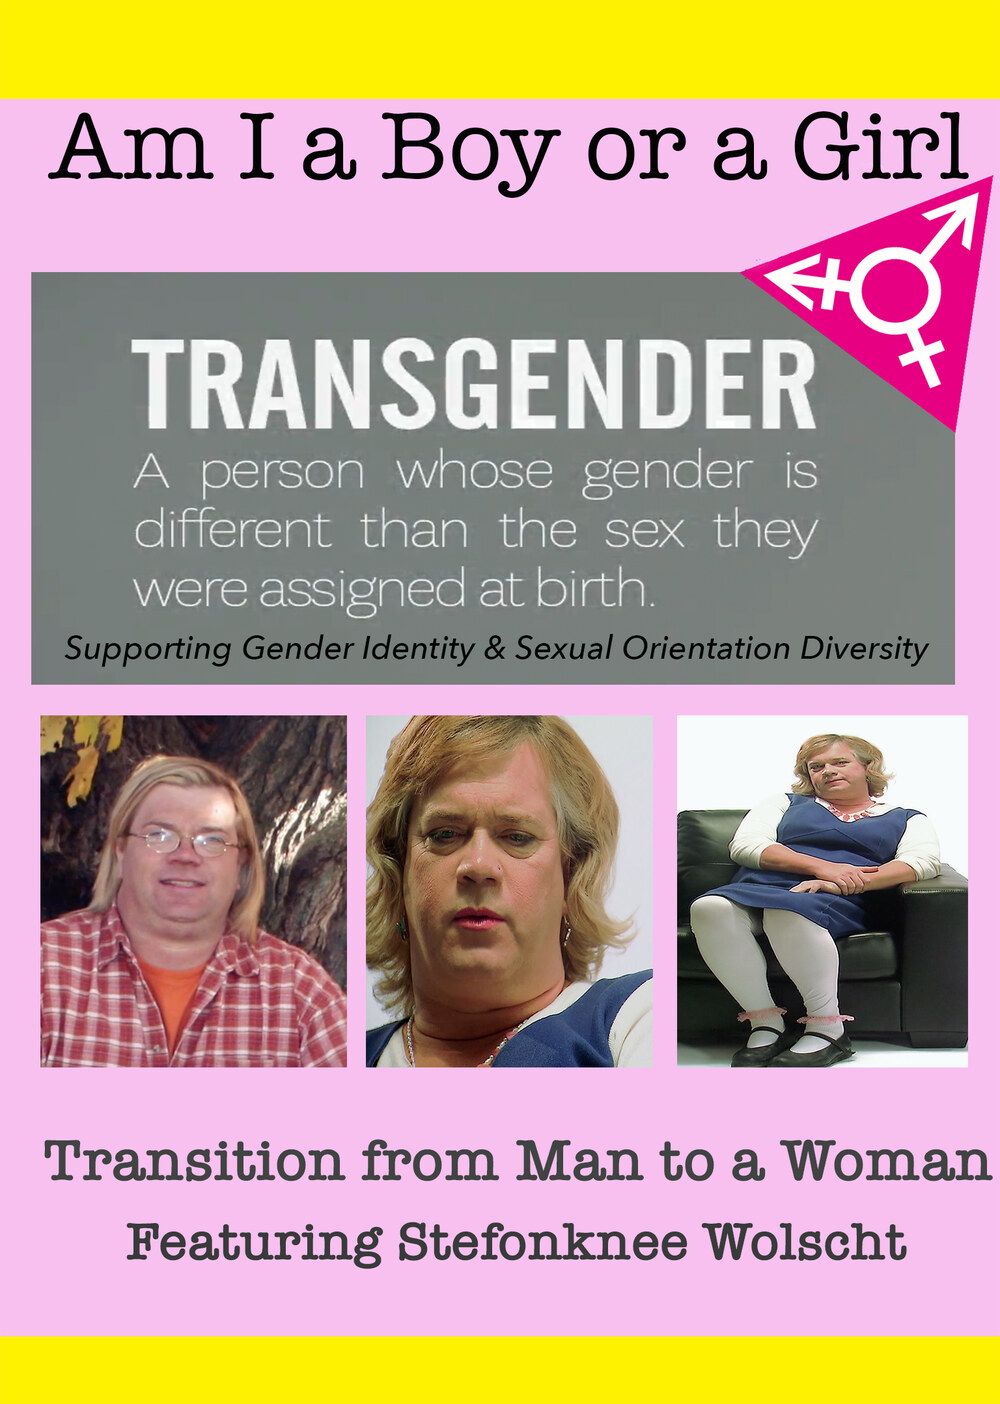 T8996 - Am I A Boy of Girl Featuring Stefonknee Wolscht - Transition from Man to a Woman